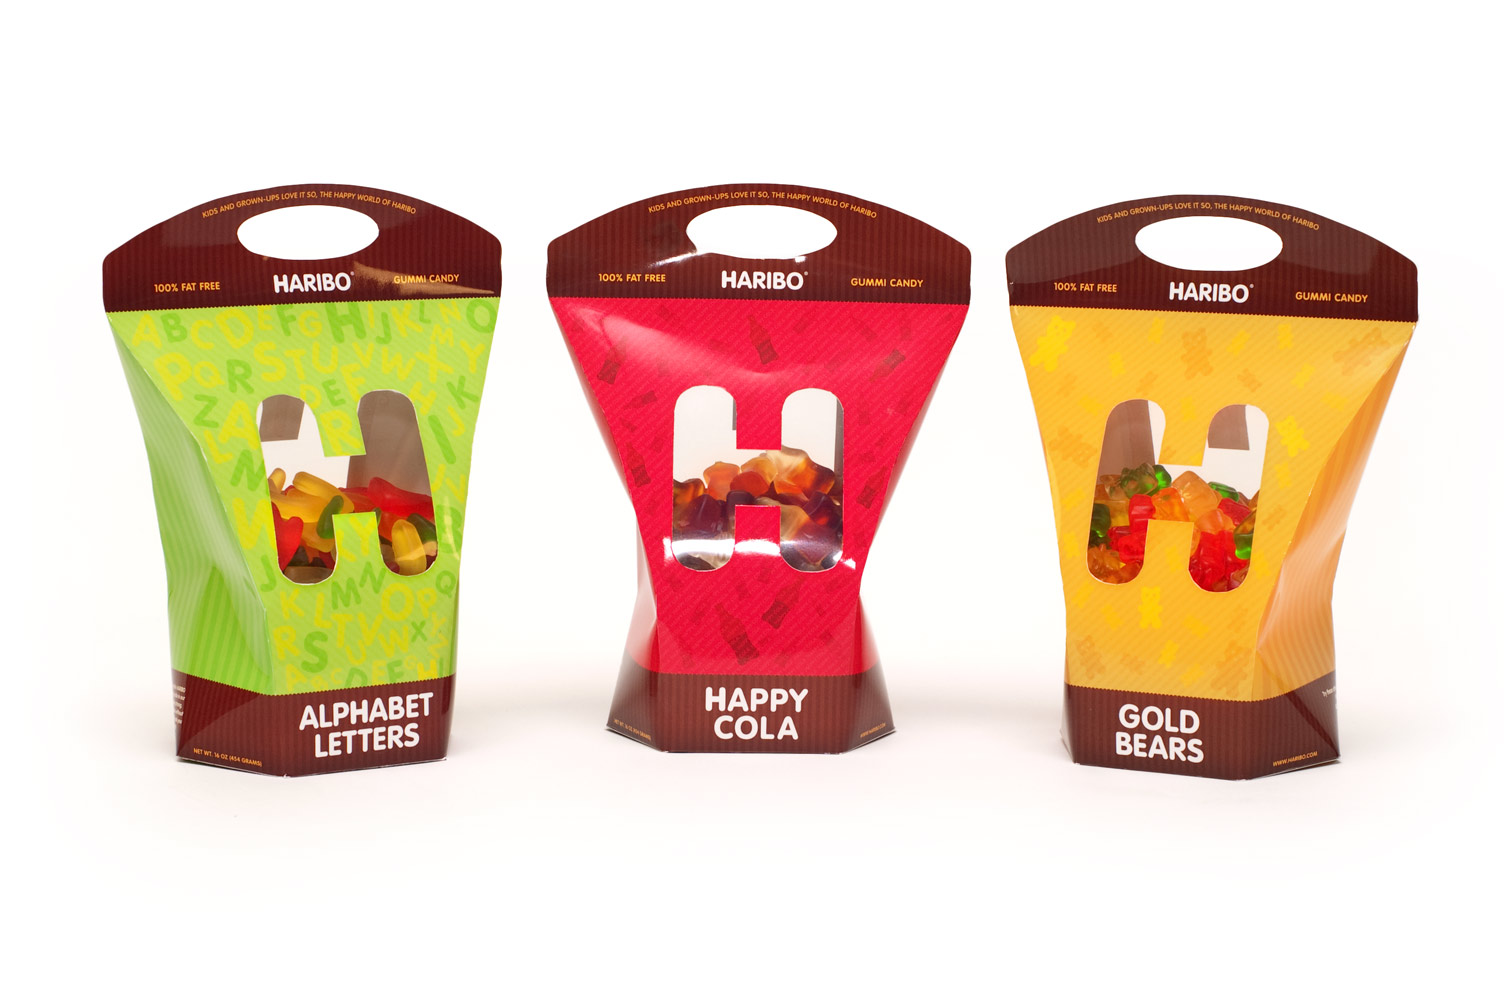 haribo carriers